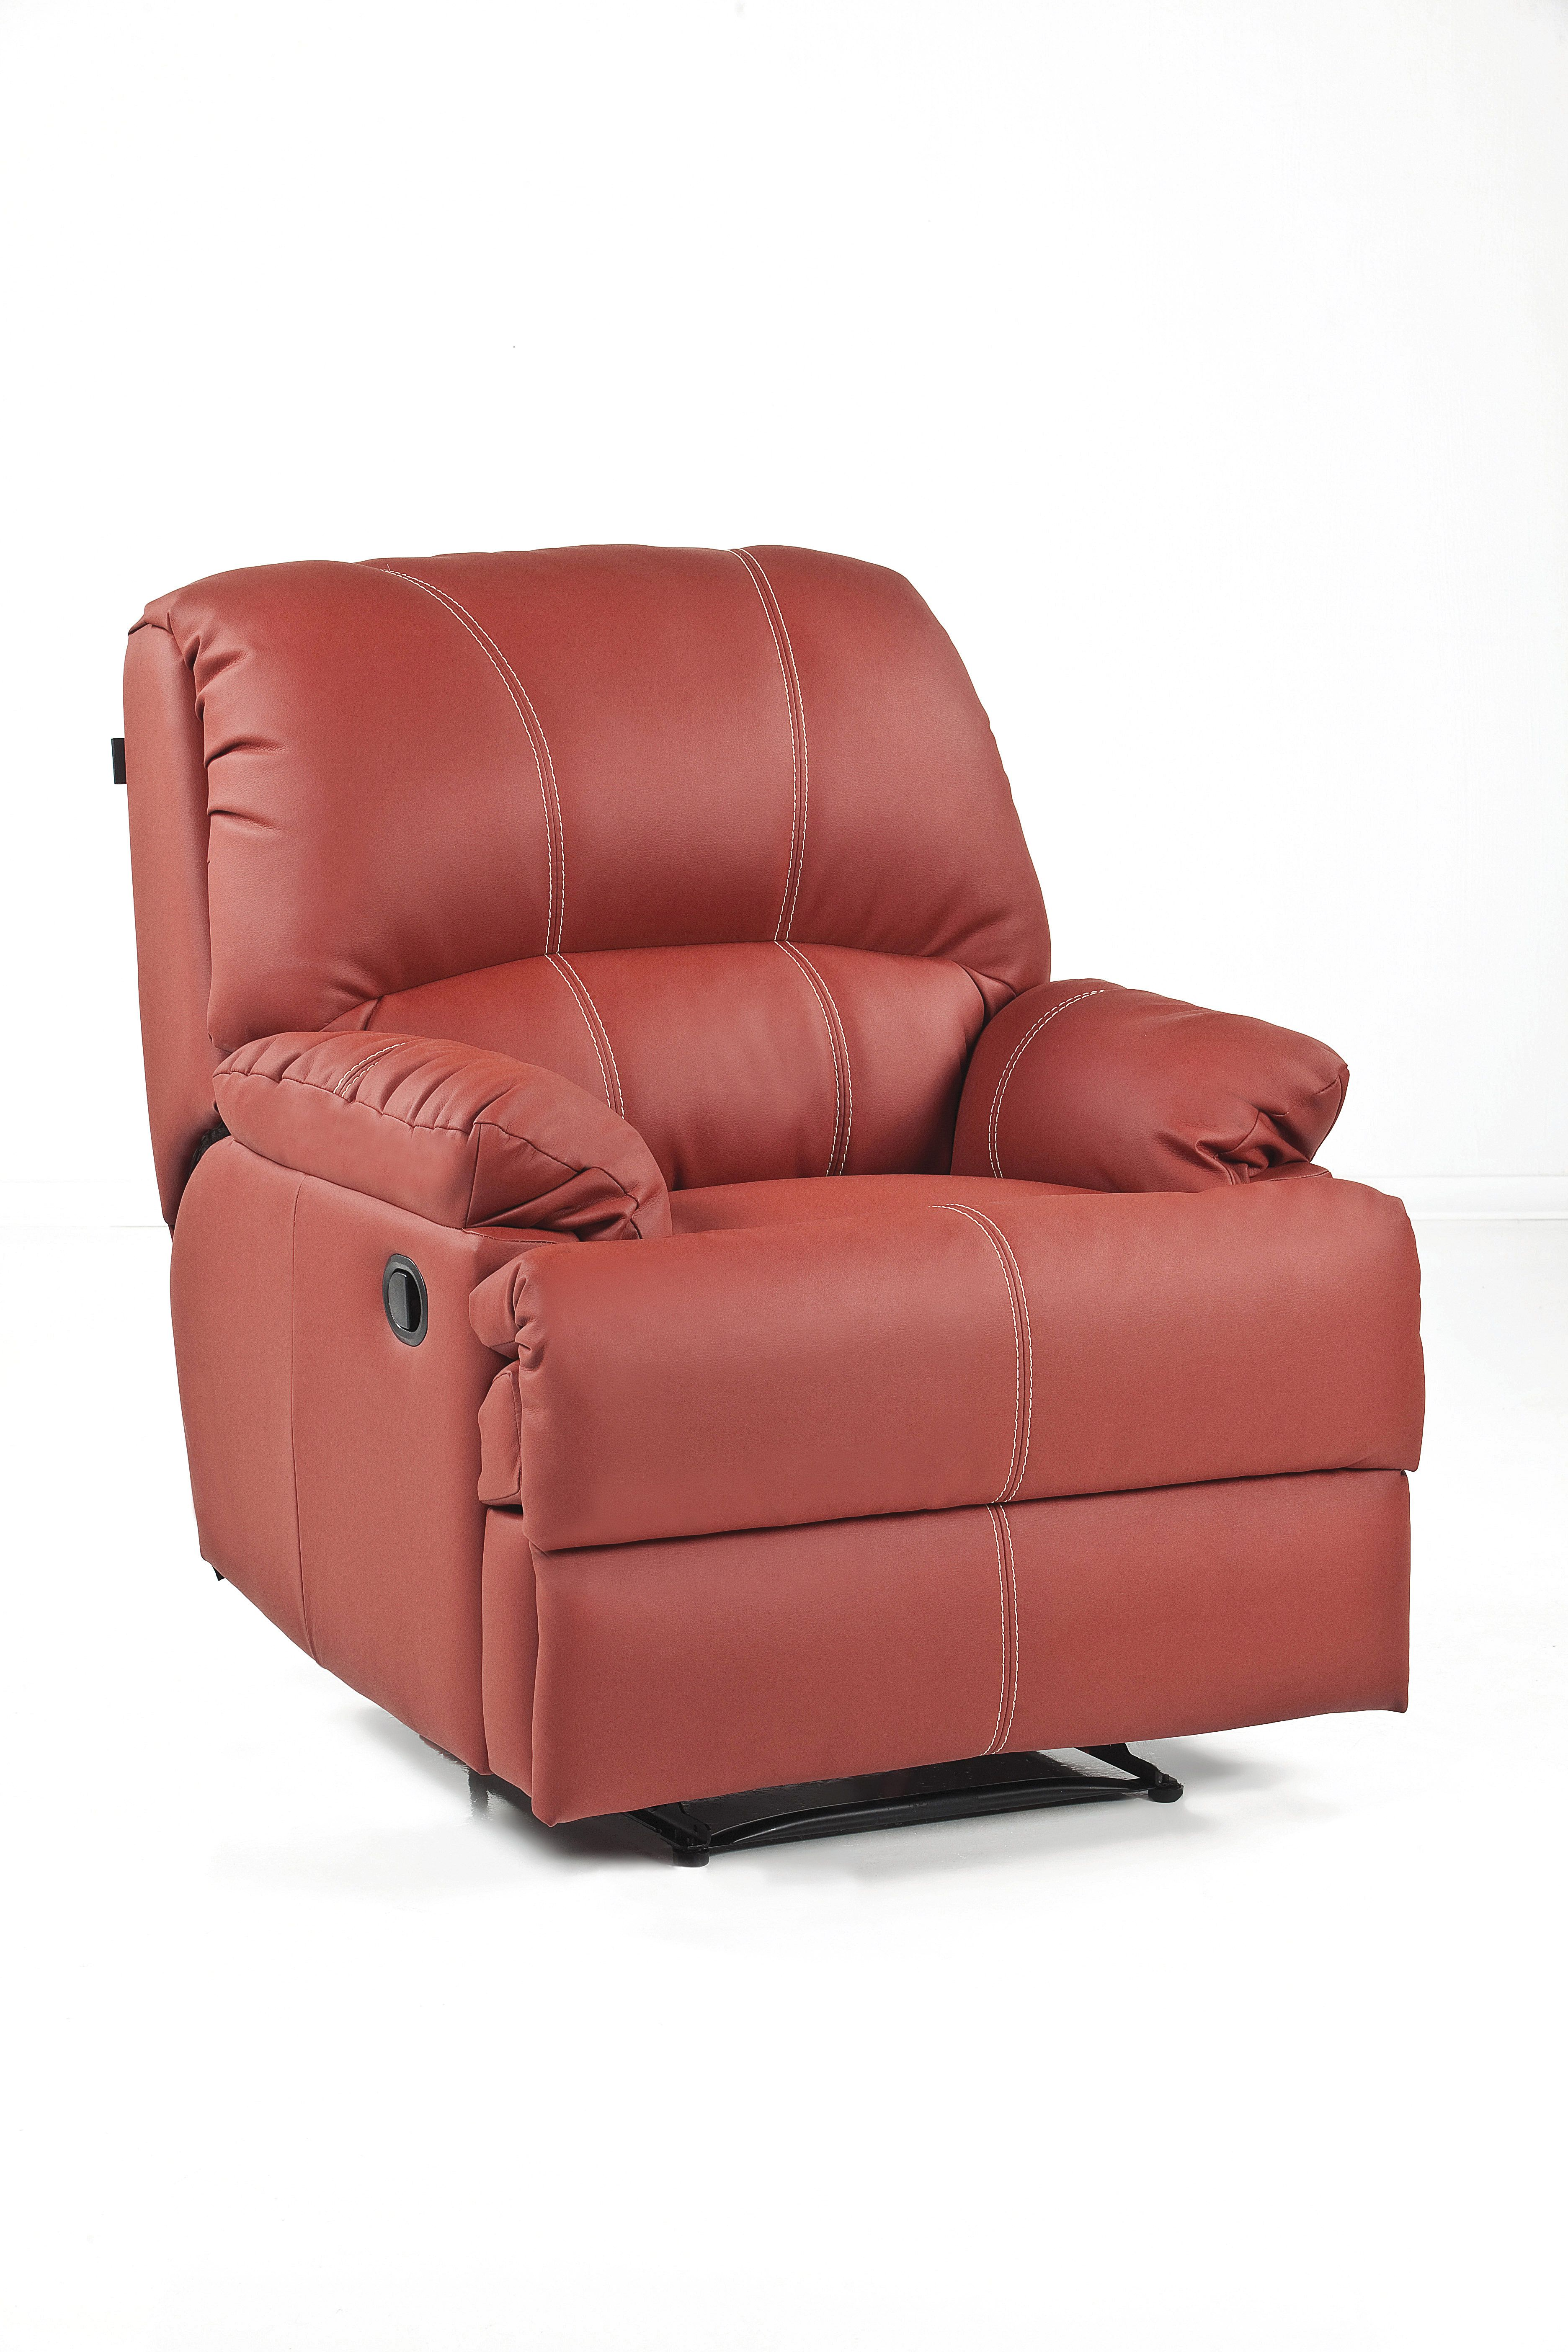 Reclinable Silln Tundra Mecnico de Placencia Muebles  Reclinables  Furniture Recliner y Chair